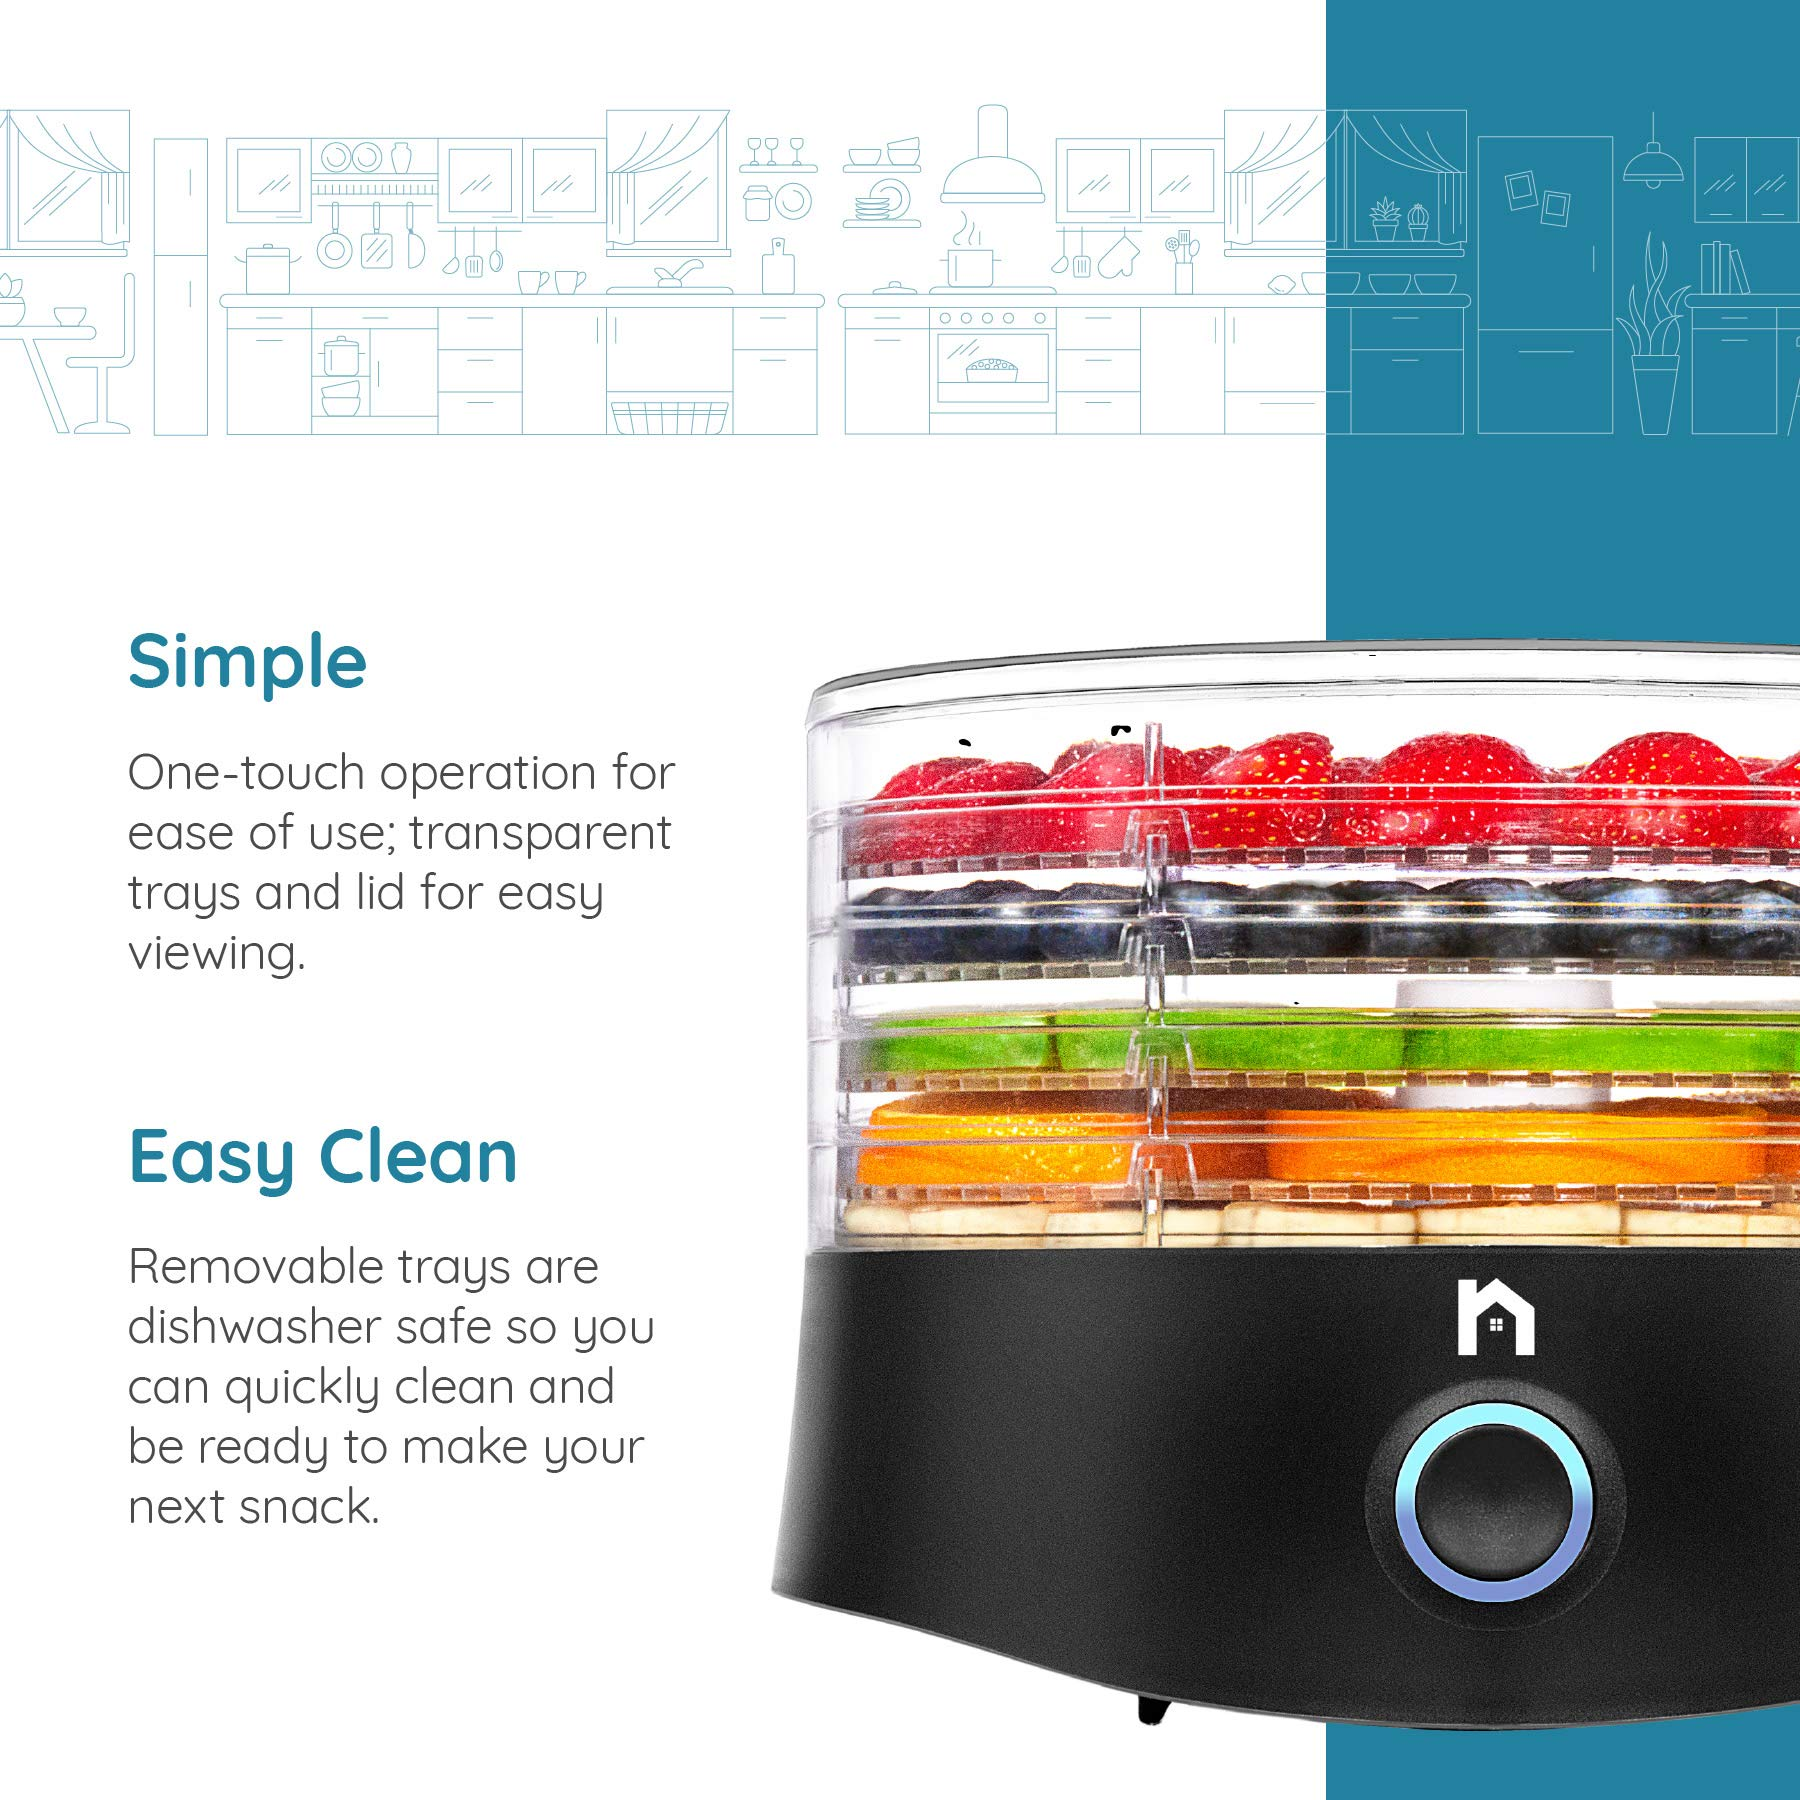 New House Kitchen 5 Round Dehydrator BPA-Free Stackable Transparent Trays Electric Professional Multi-Tier Food Preserver, Beef Jerky Maker, Fruit & Vegetable Dryer, Compact, Black by New House Kitchen (Image #2)